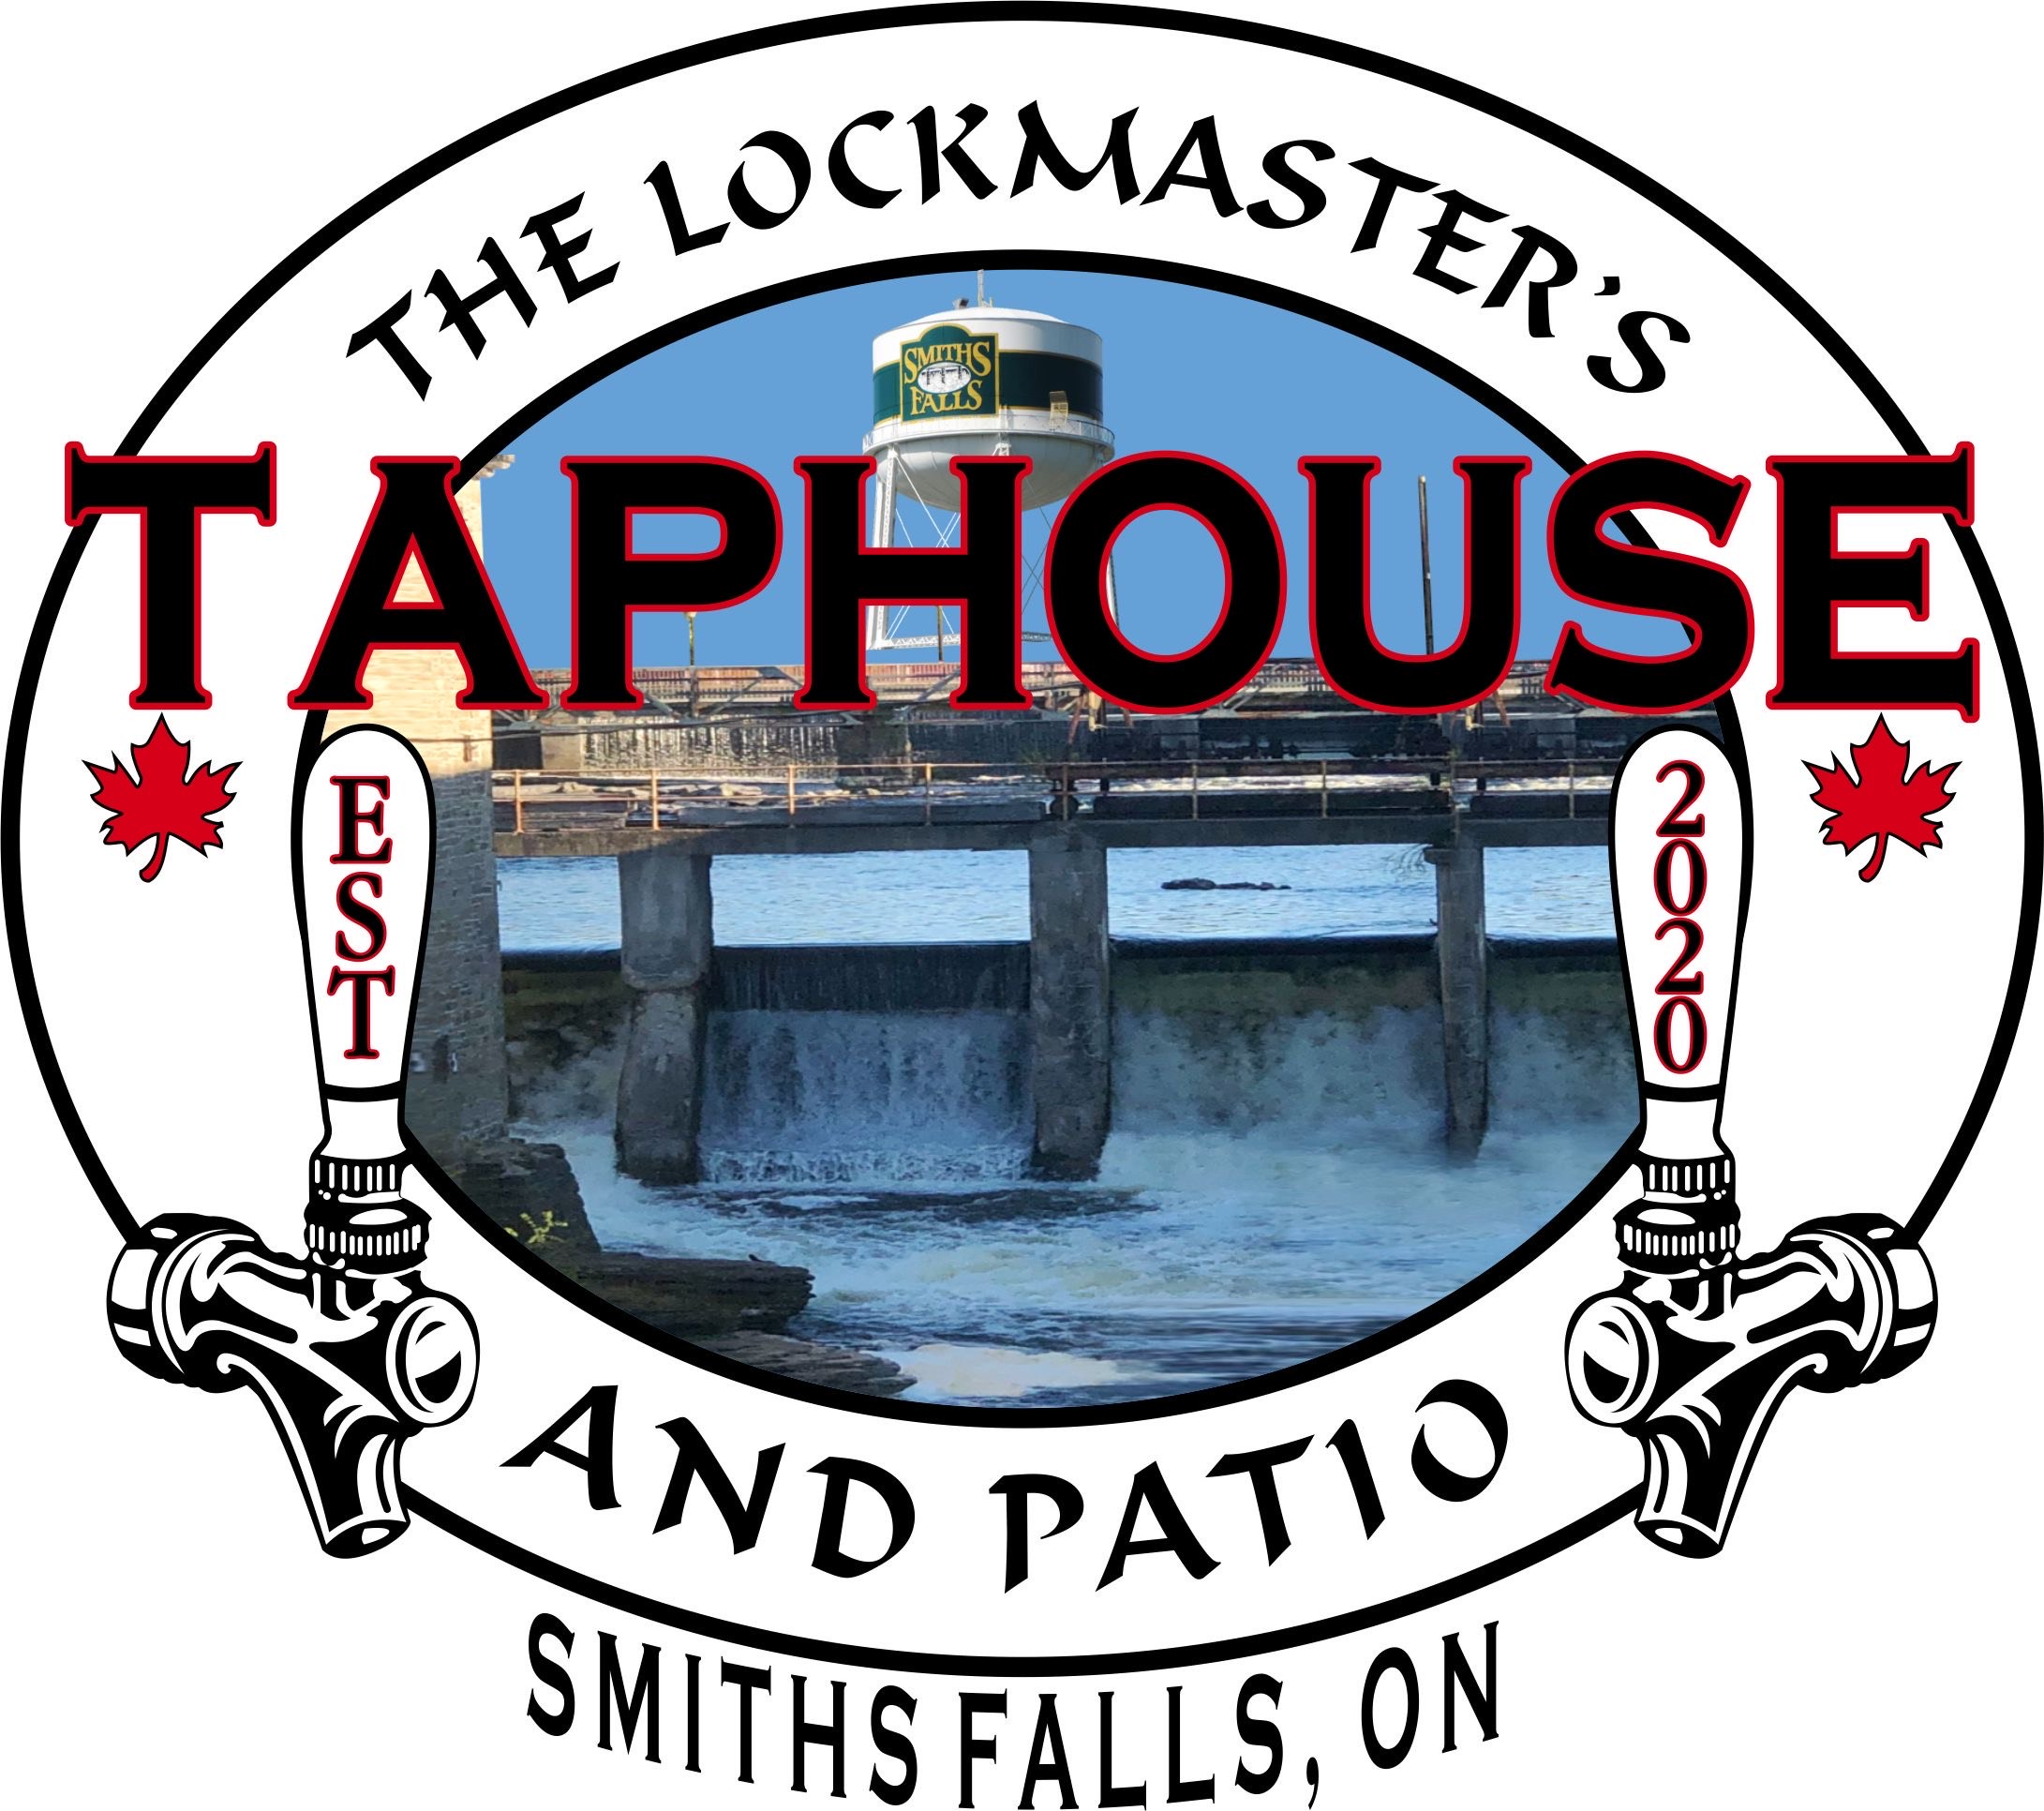 The LockMasters TapHouse